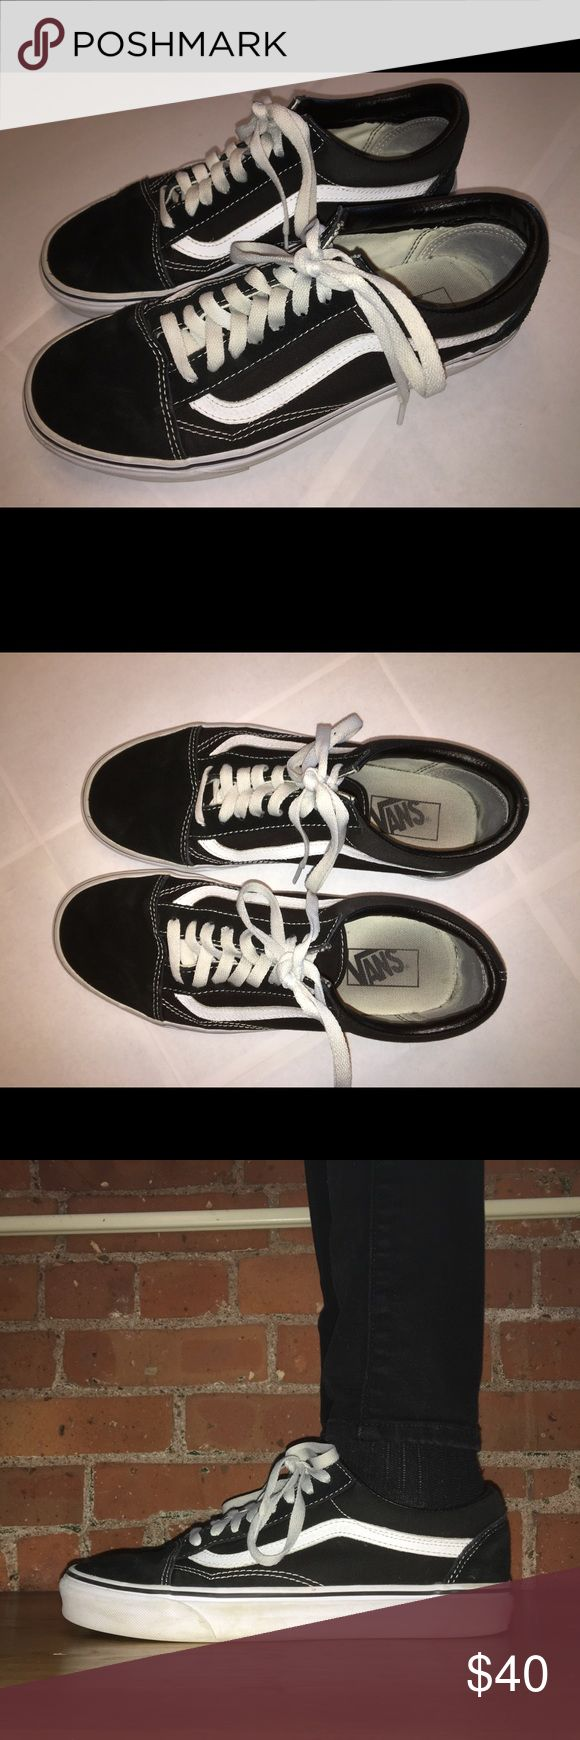 Vans Old Skool Black/White Old Skool Vans in black with white.  - Men's 8 - In great condition - Worn several times, but not very often - Very versatile  ALL SALES ARE FINAL NO TRADES Vans Shoes Sneakers